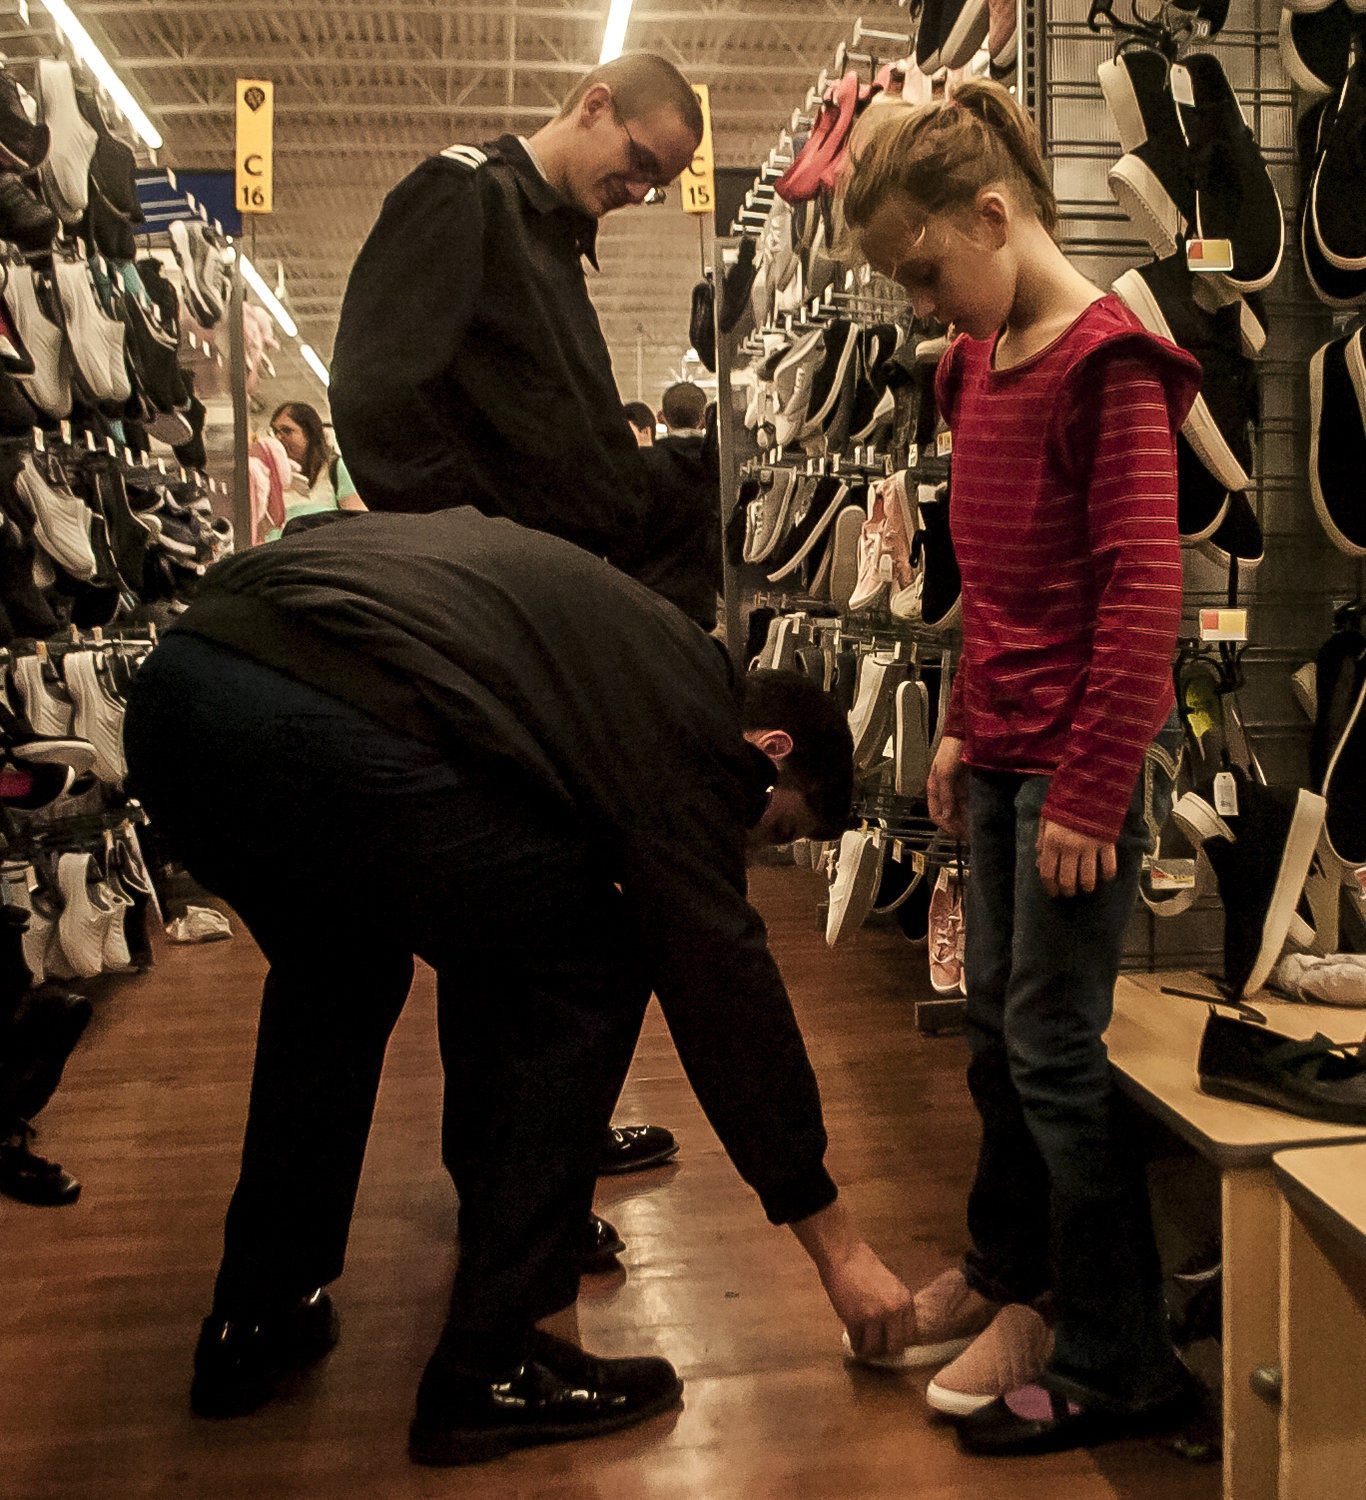 Kyleigh Garrett gets fitted for new shoes by Cass High JROTC members Aaron Whitlock, front, and Christopher Bilodeau at Saturday's Shop with a Hero event in Cartersville.